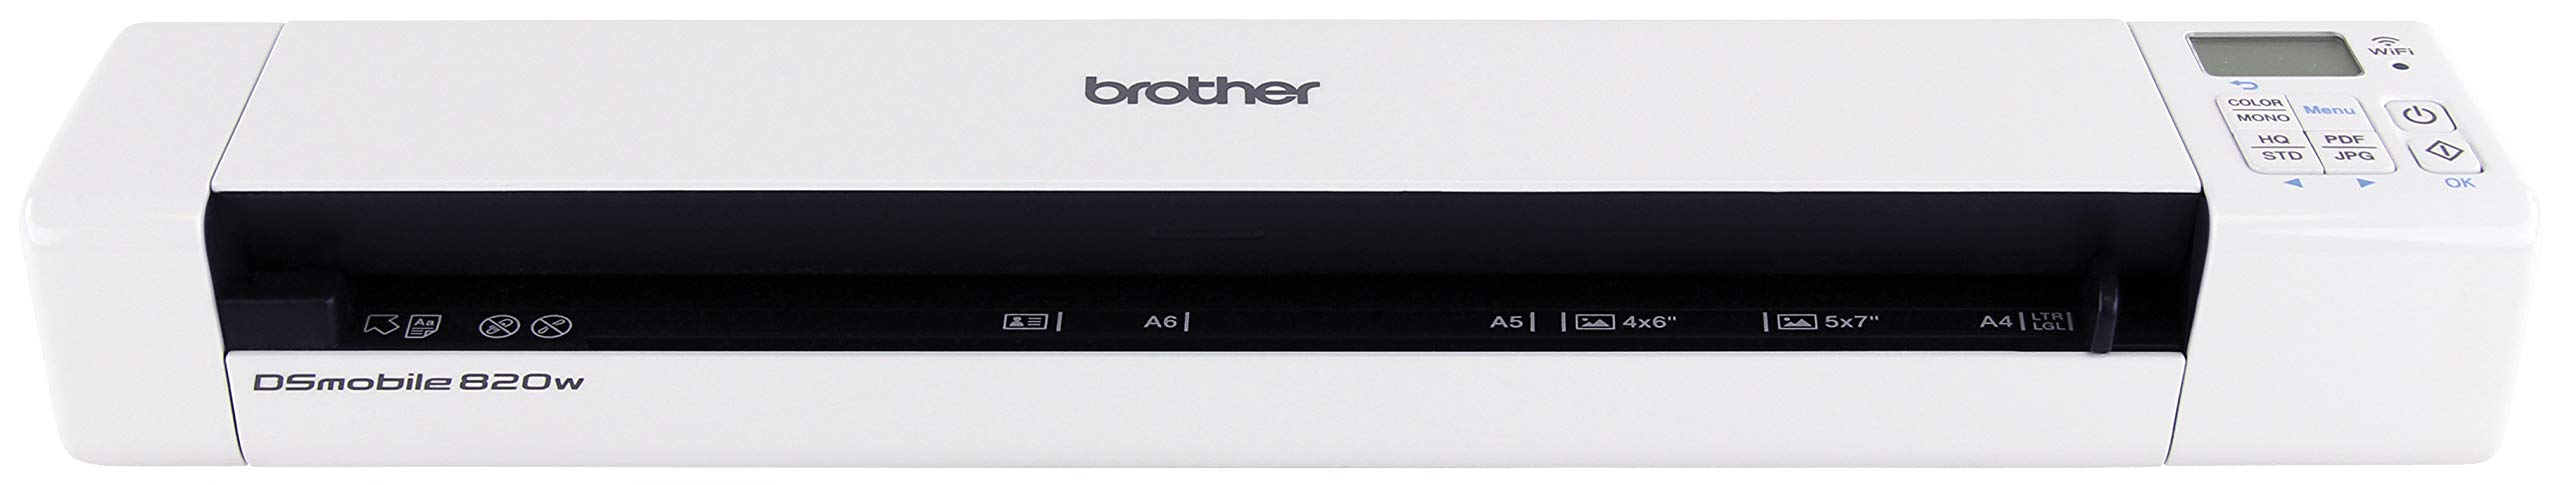 Brother Mobile Color Page Scanner, DS-820W, Wi-Fi Transfer, Fast Scanning, Compact and Lightweight by Brother